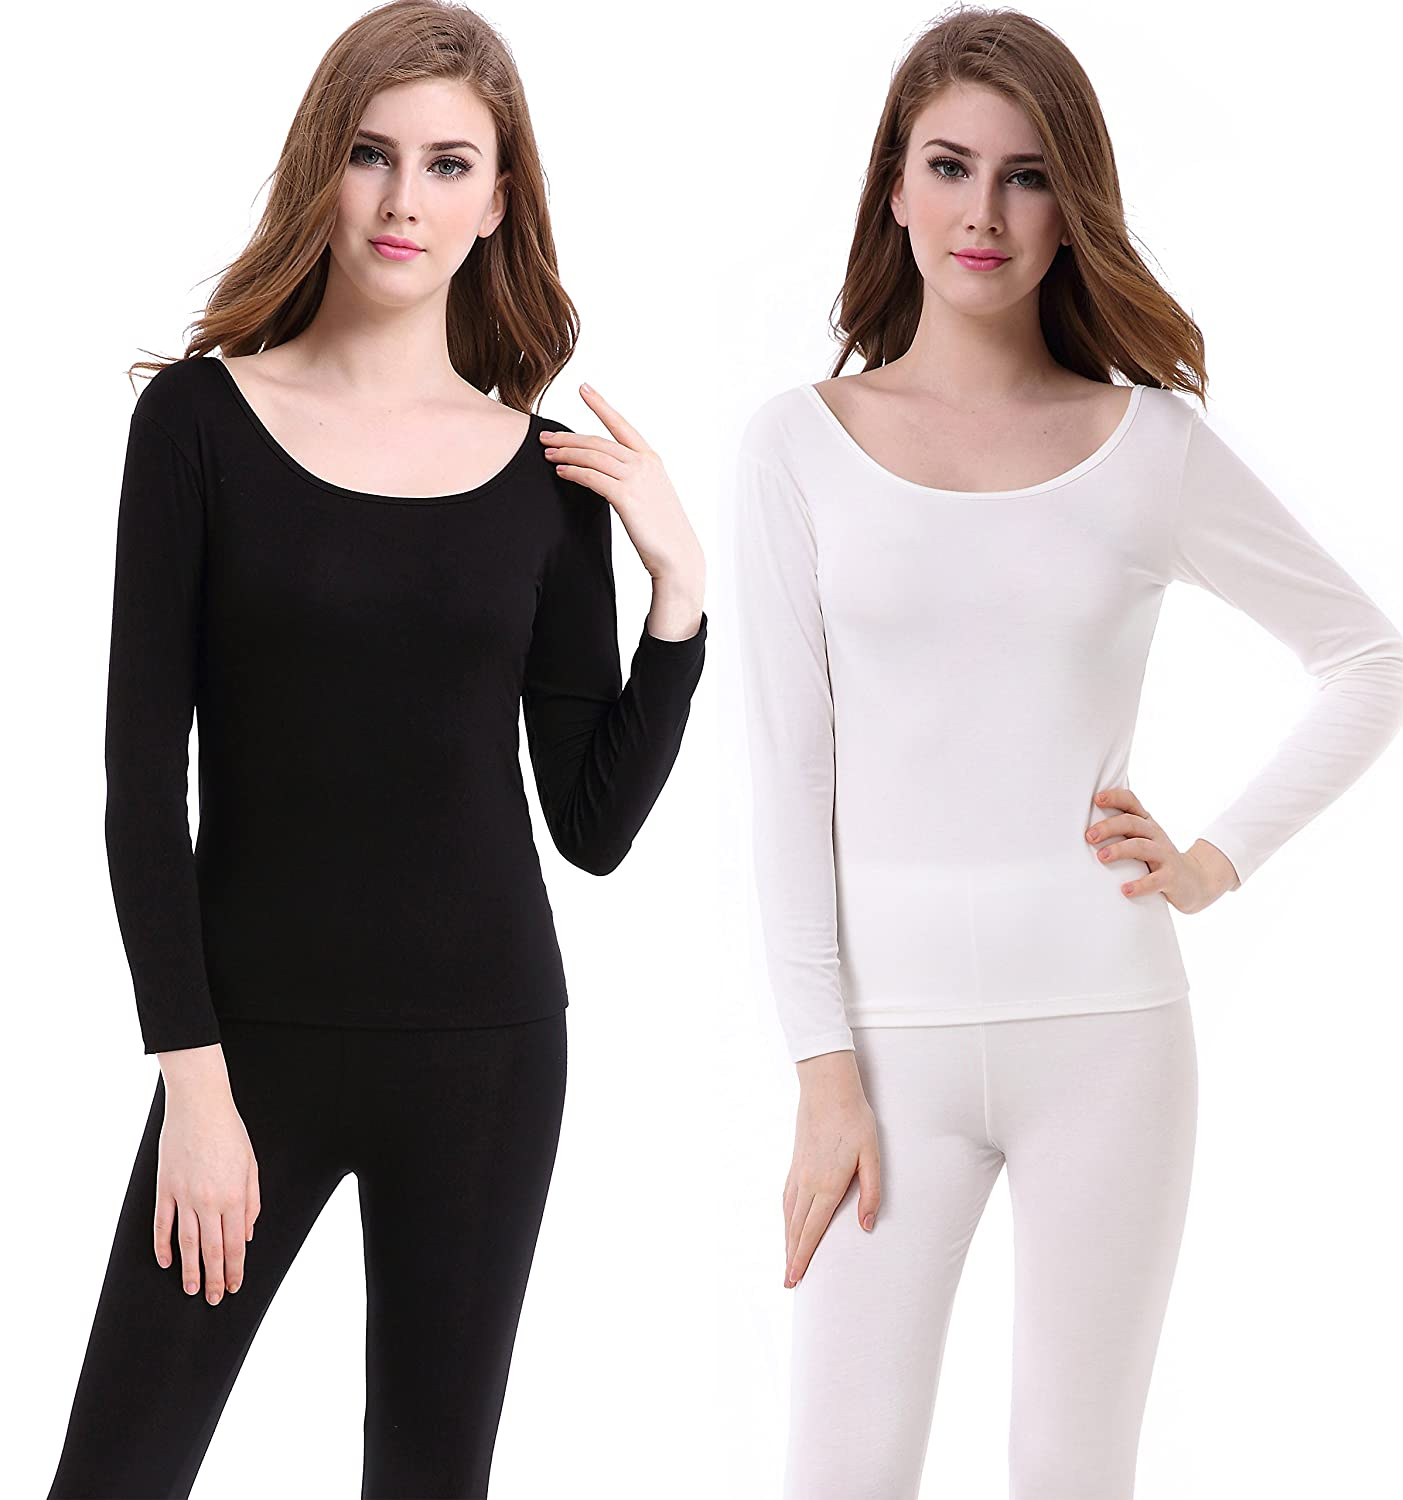 Women's Scoop Neck Thermal Underwear Set Stretch Comfy Base Layer Long Johns